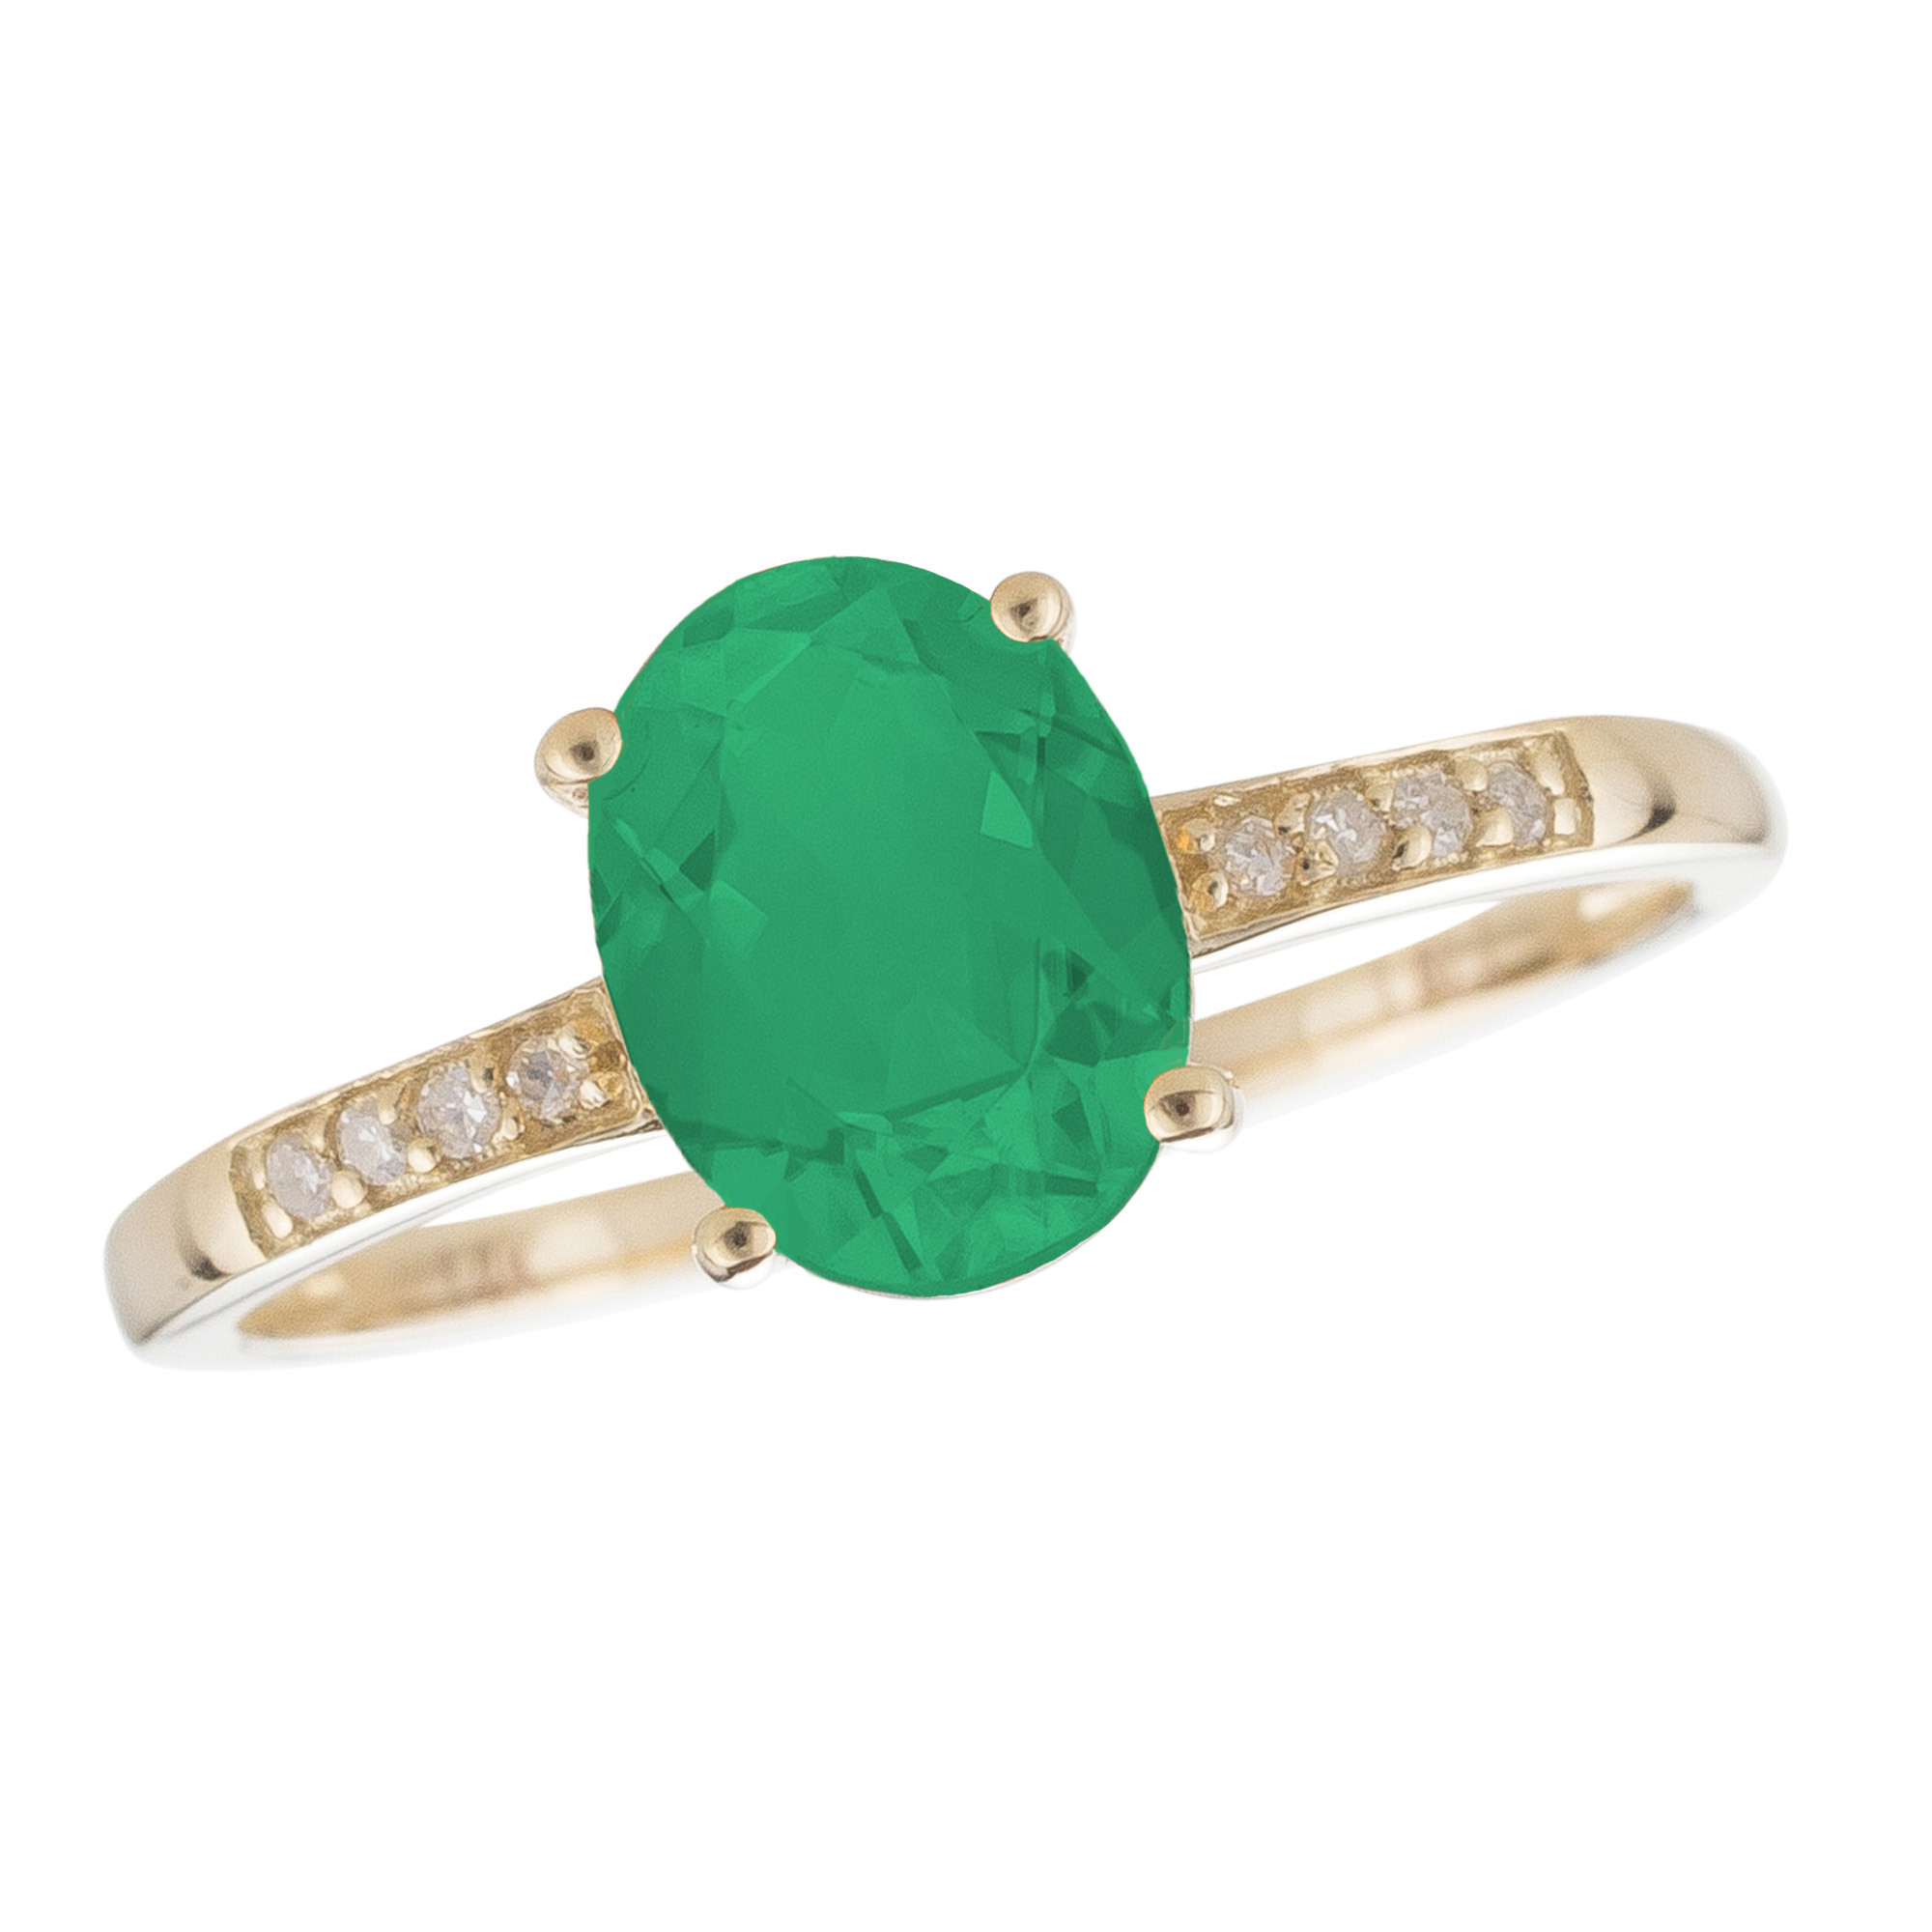 operandi green martin ring moda one by large kind katz loading oval a emerald of